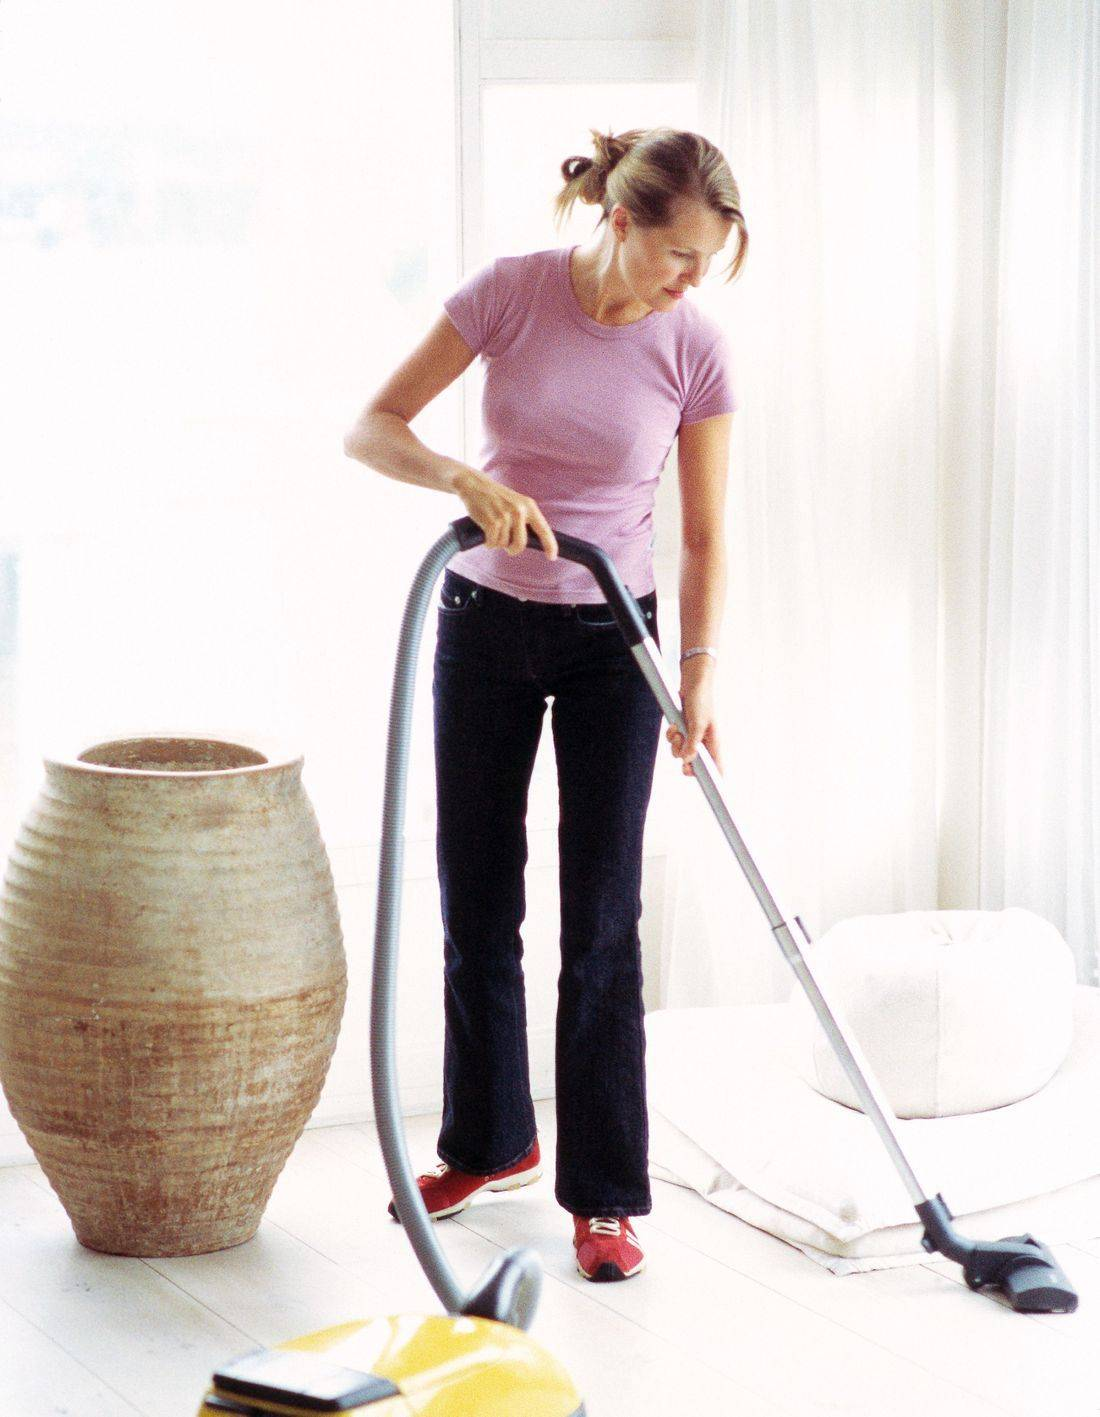 Cleaning Services In Kent, Bromley